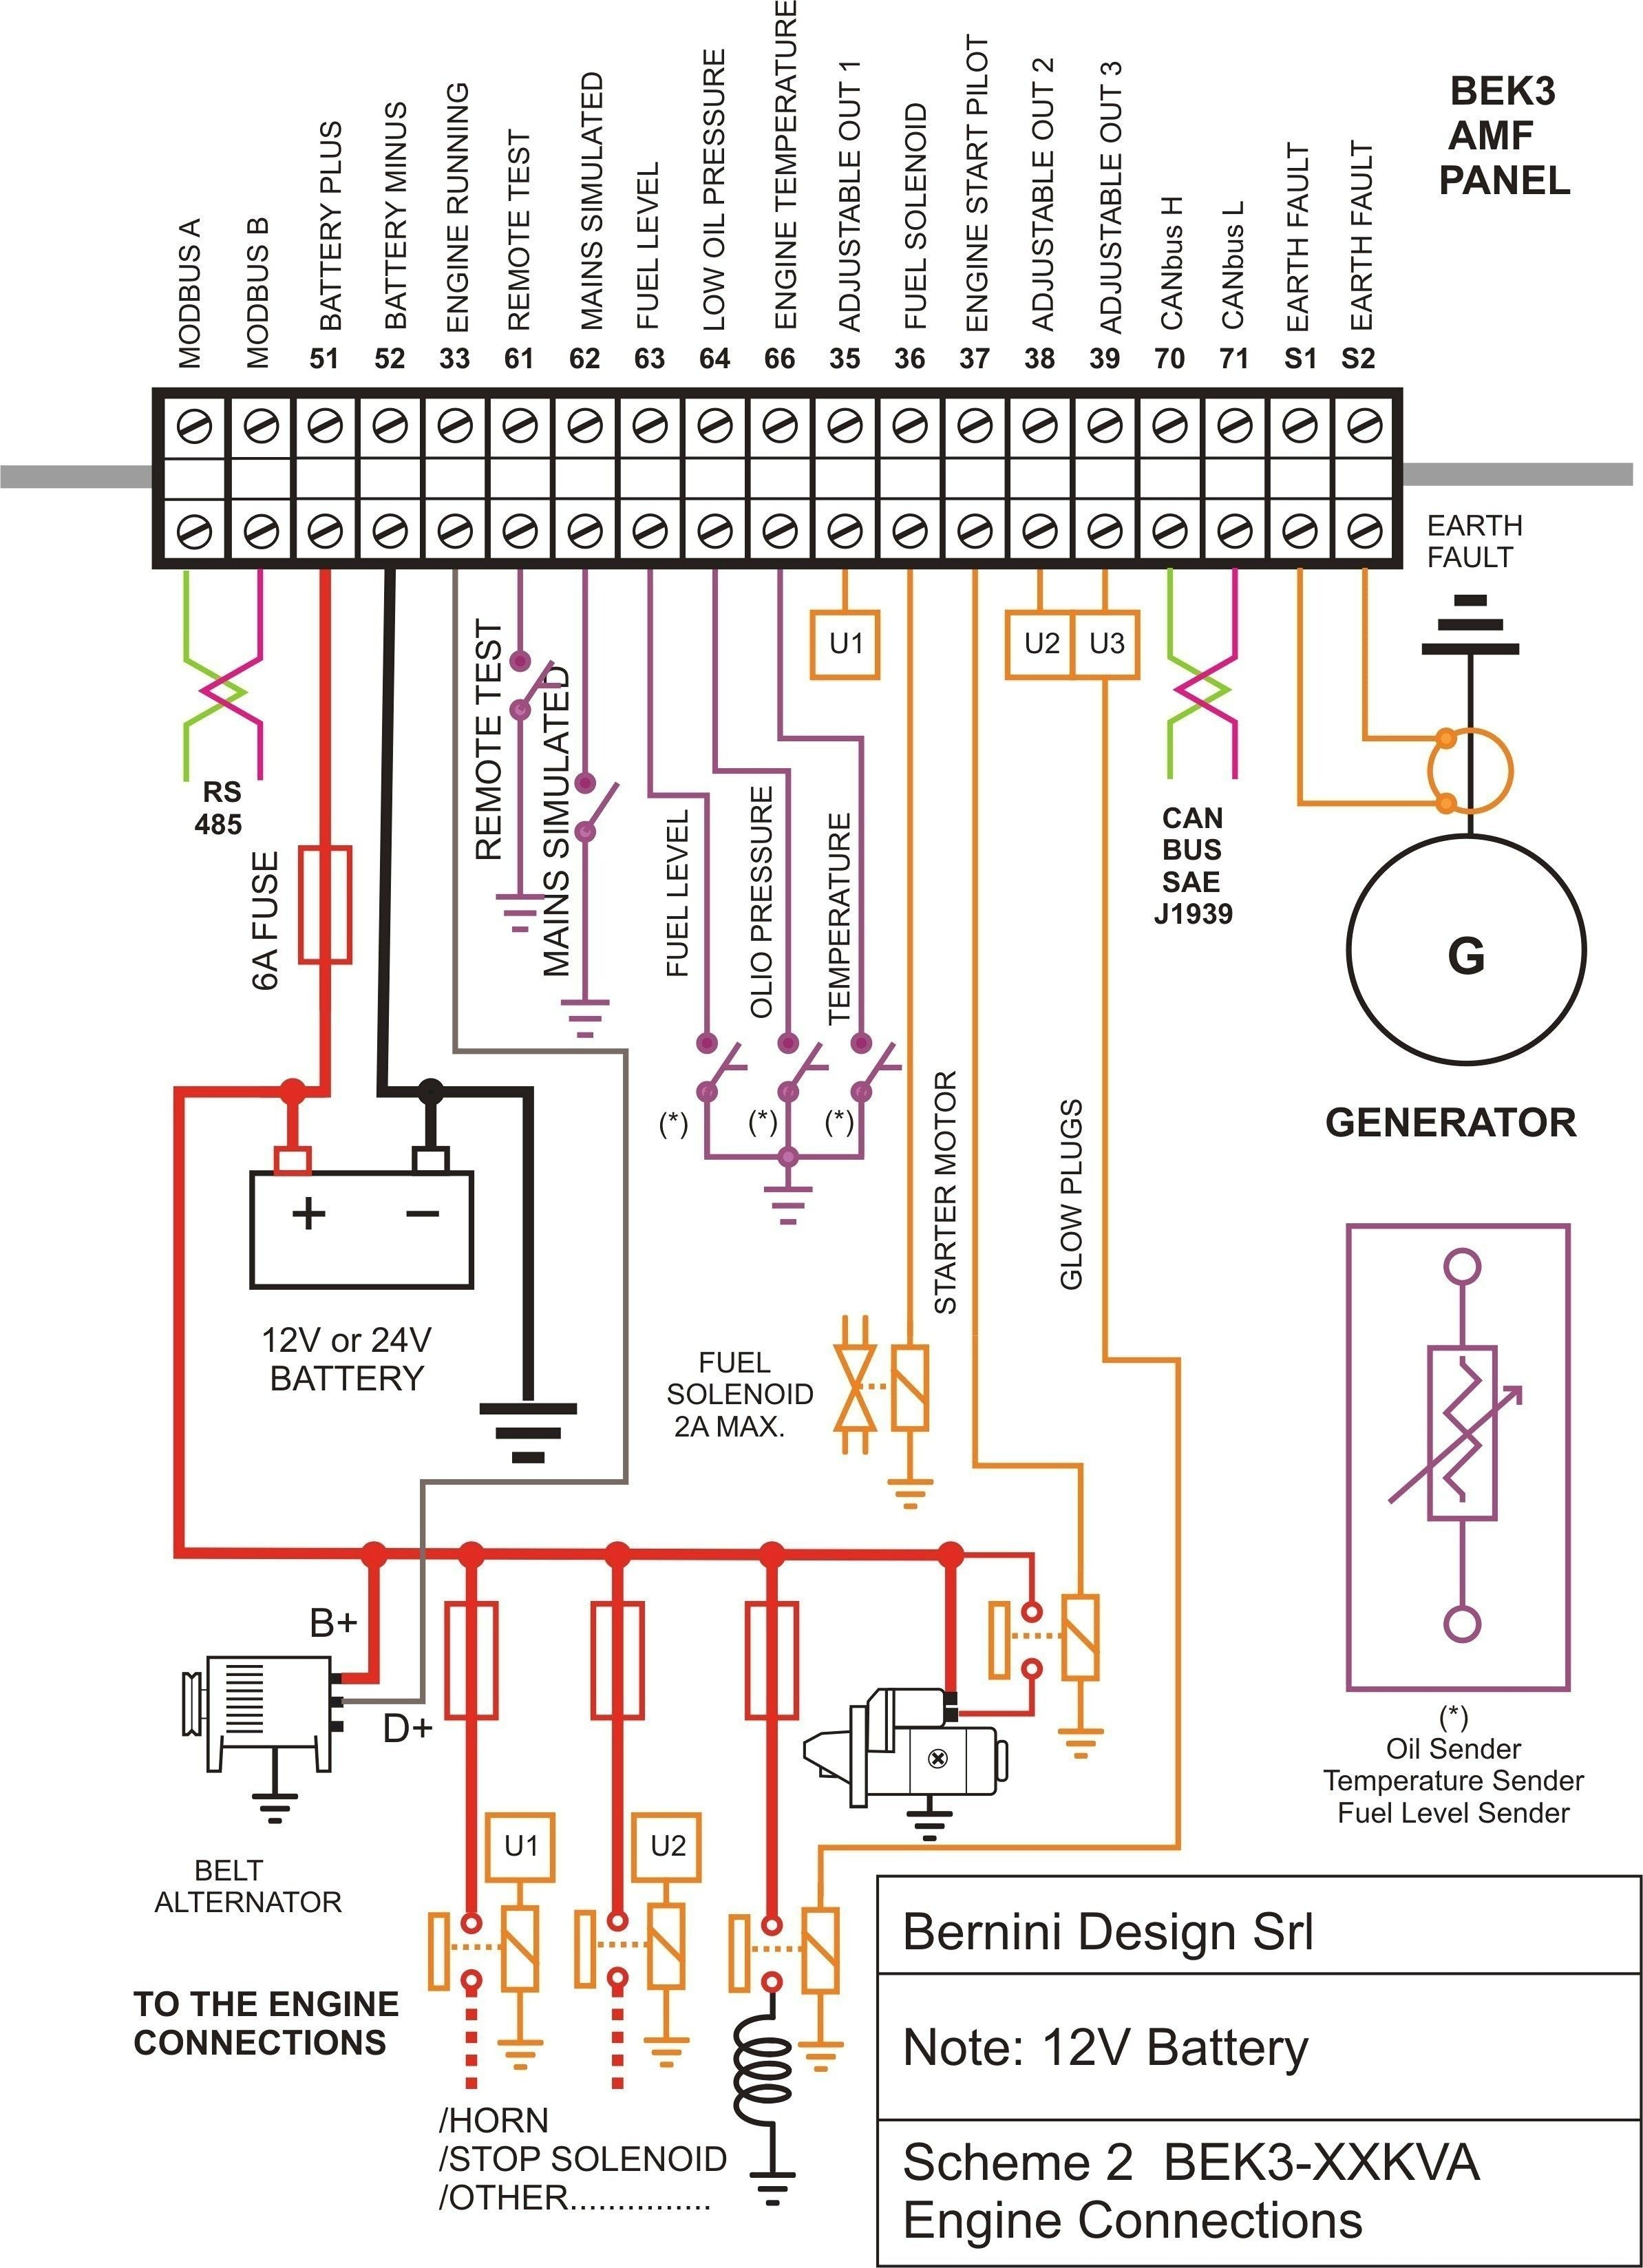 Unique Home Wiring Diagram Sample #diagram #diagramsample #diagramtemplate  #wiringdi… | Electrical circuit diagram, Basic electrical wiring, Electrical  panel wiringPinterest